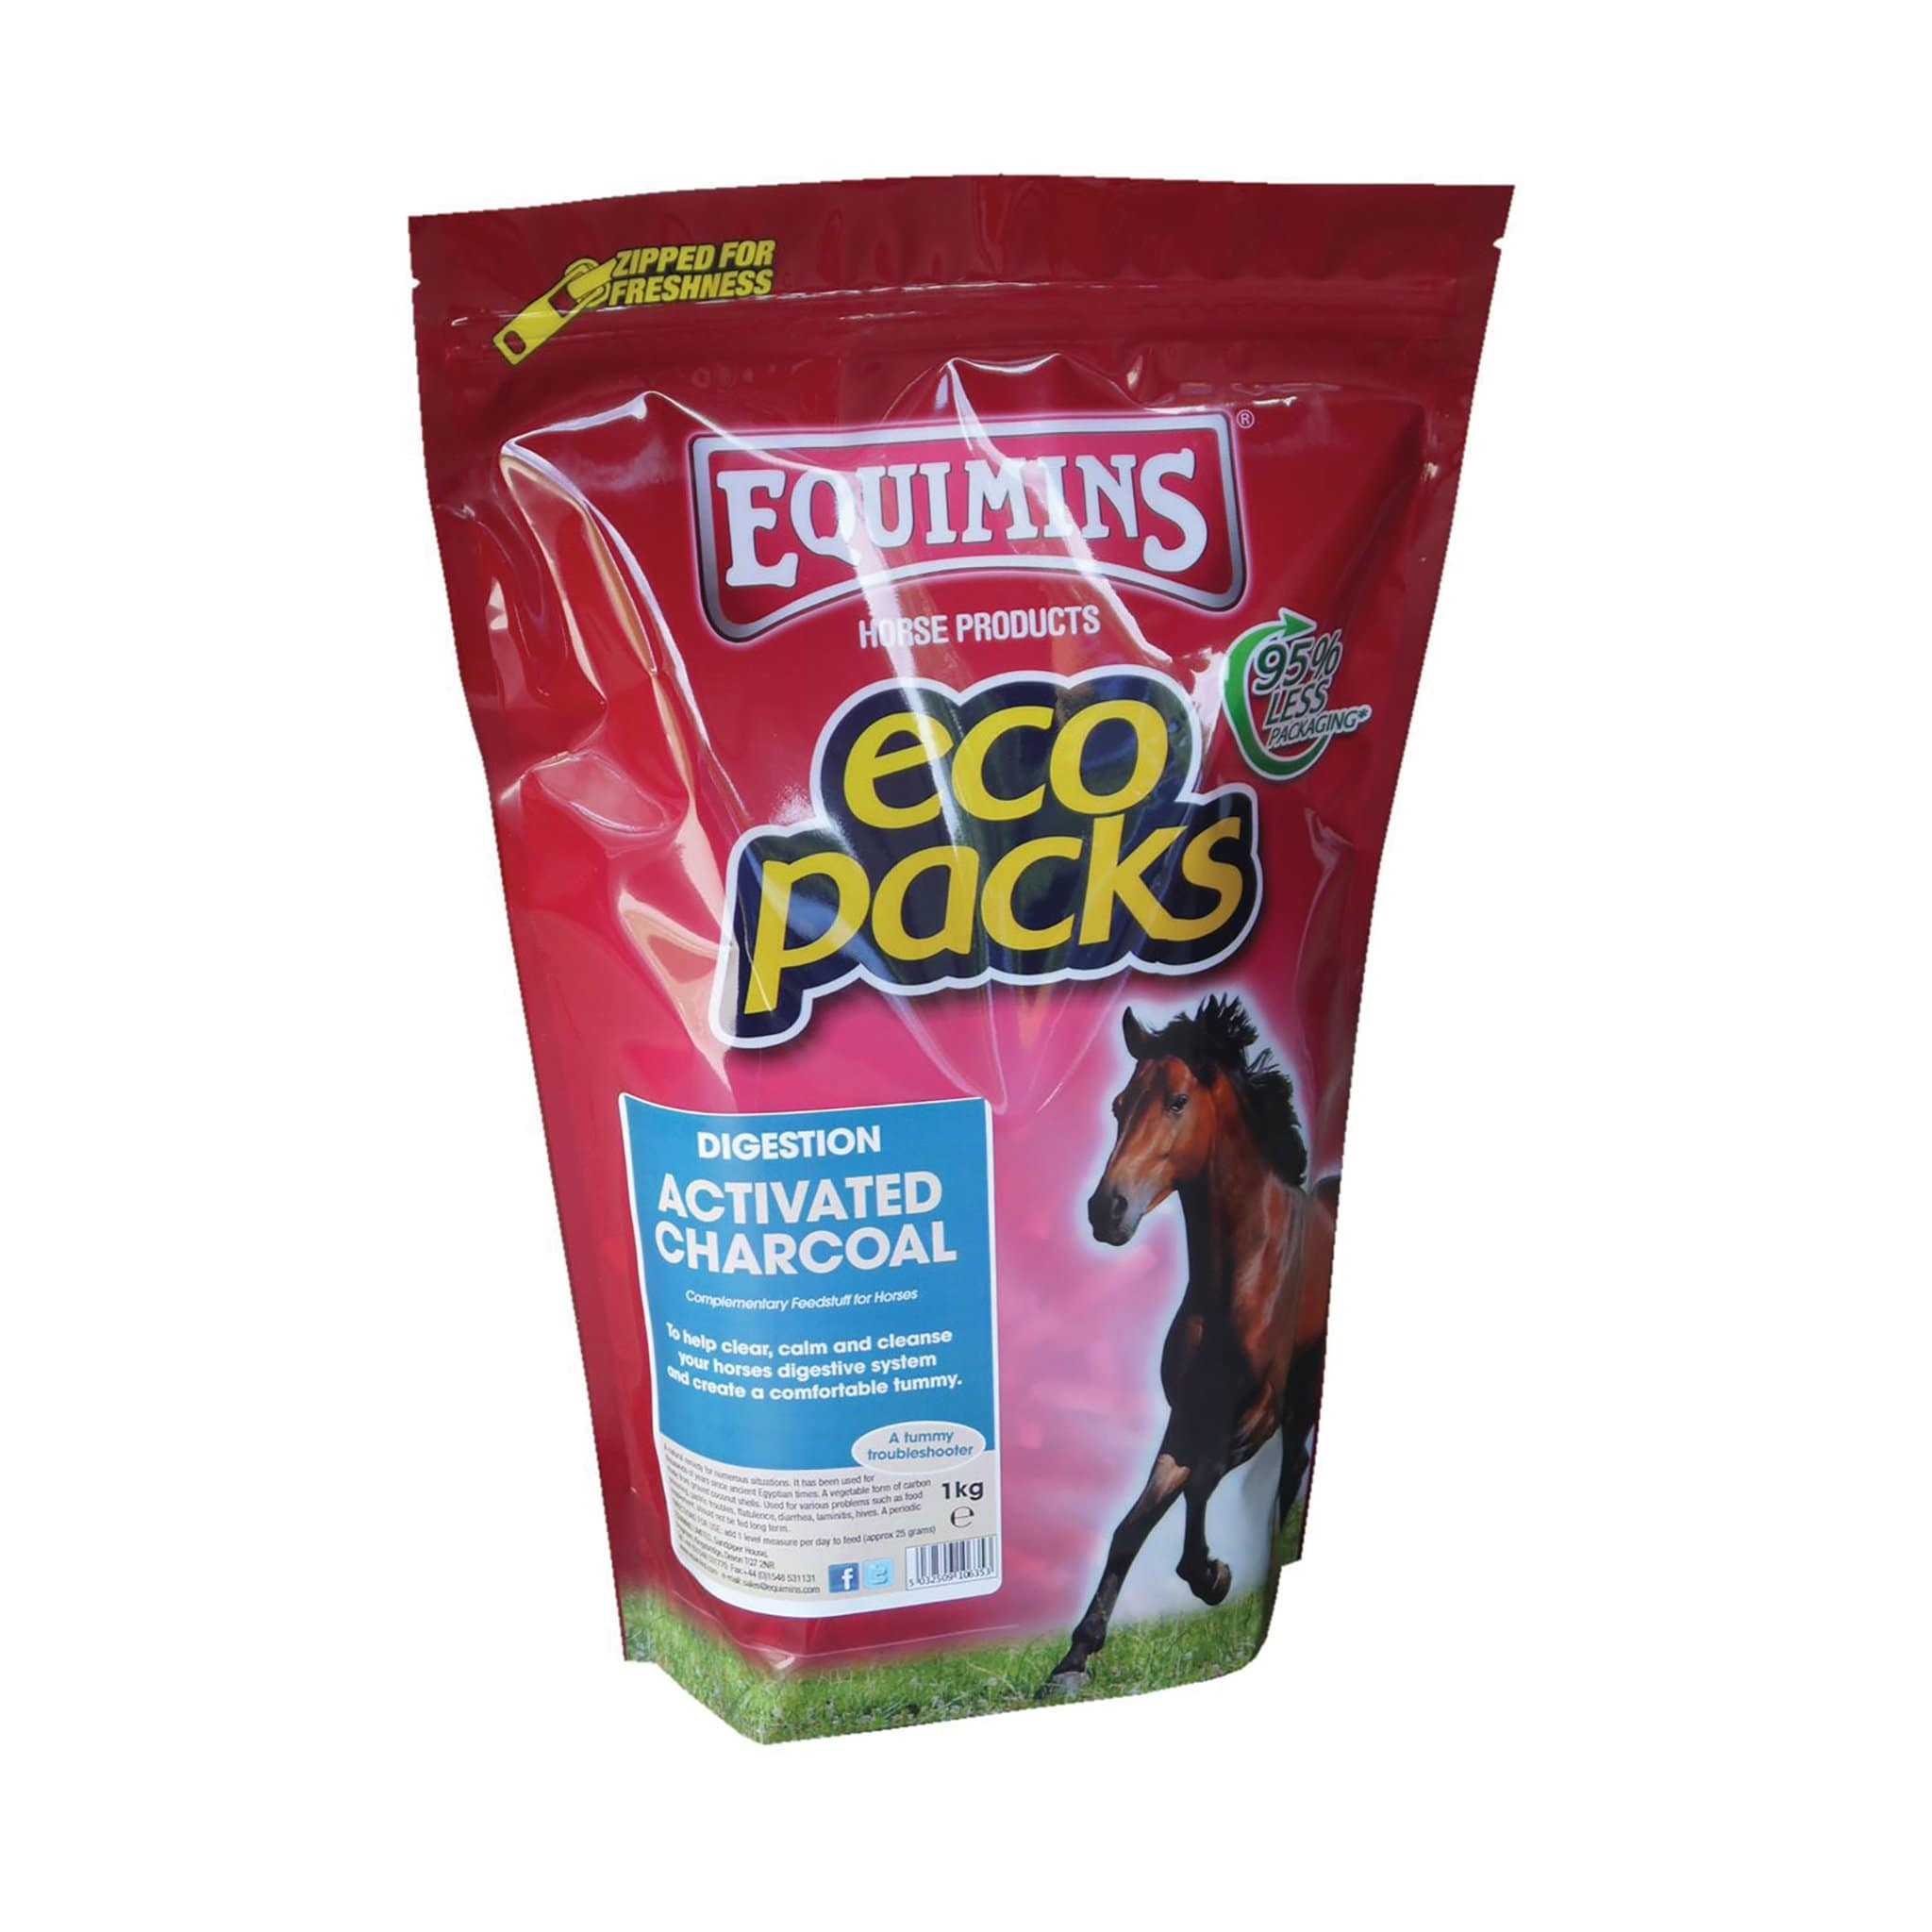 Equimins Activated Charcoal 1KG EQS0510